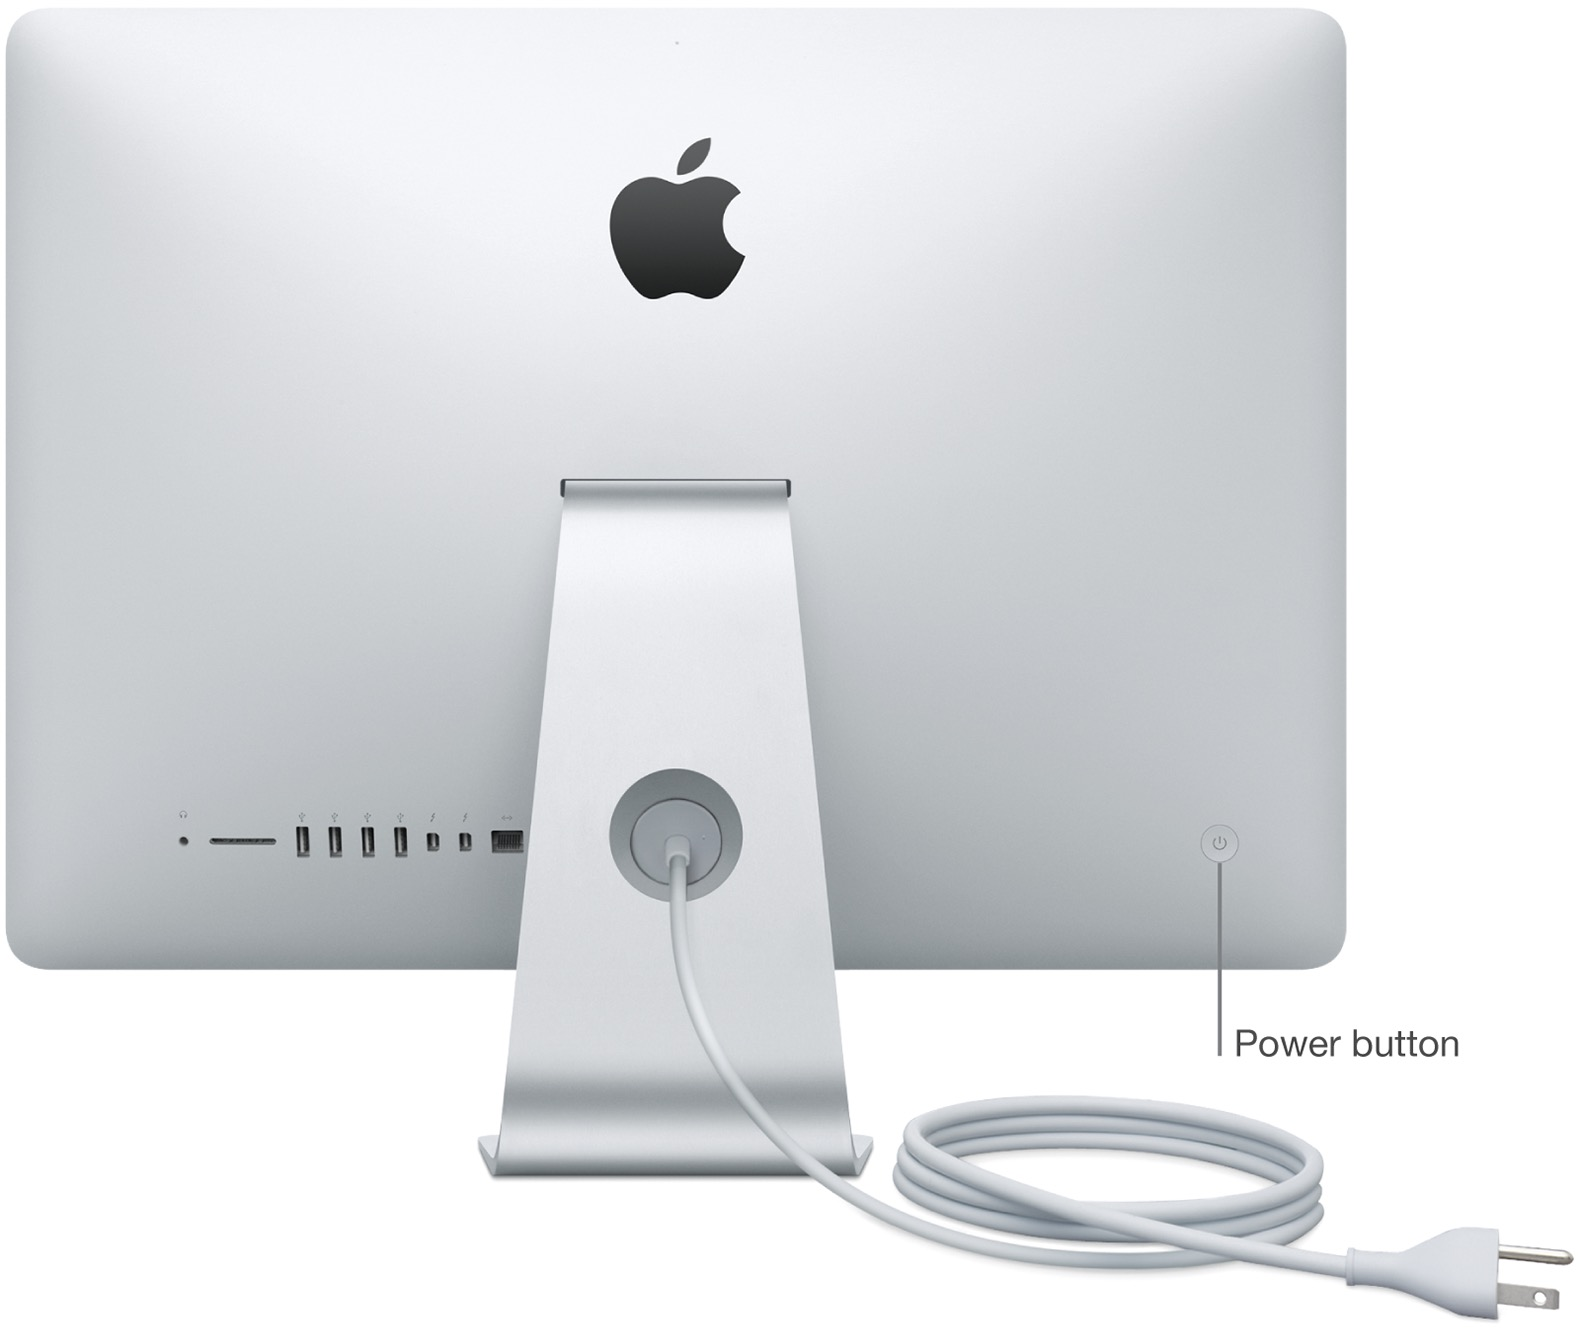 iMac power button